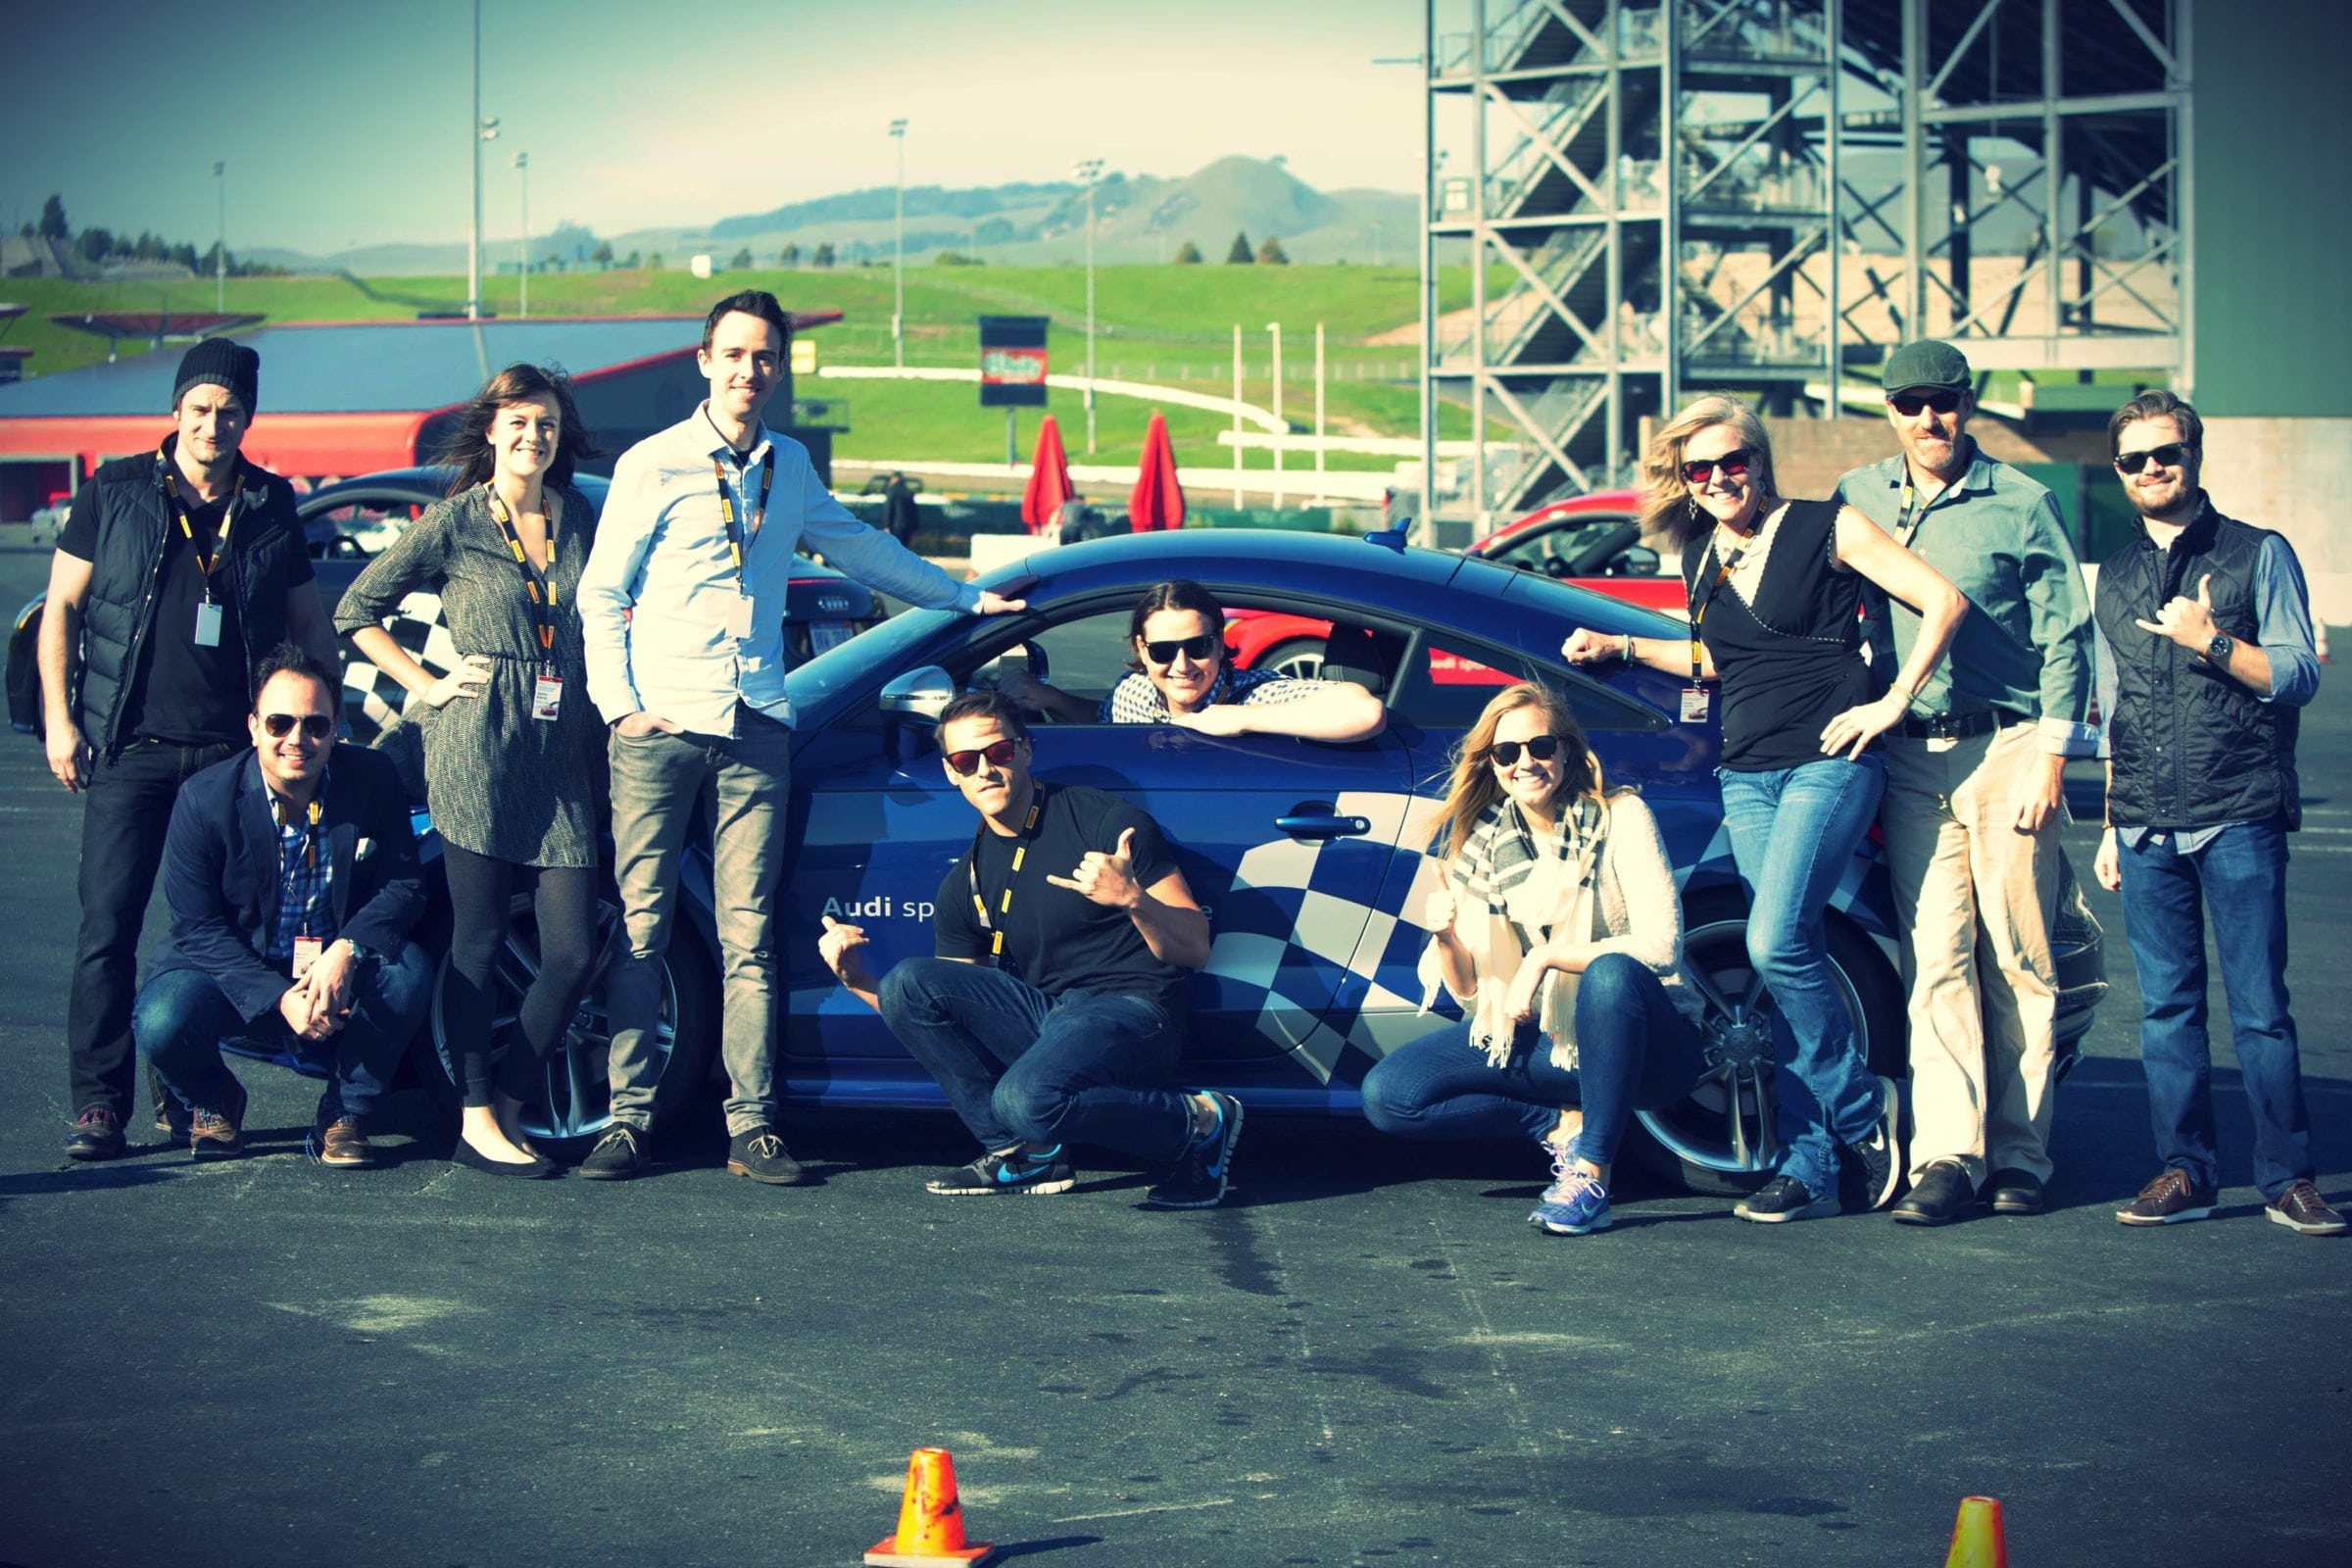 Audi sportscar experience Helping Bay Area Leaders Accelerating